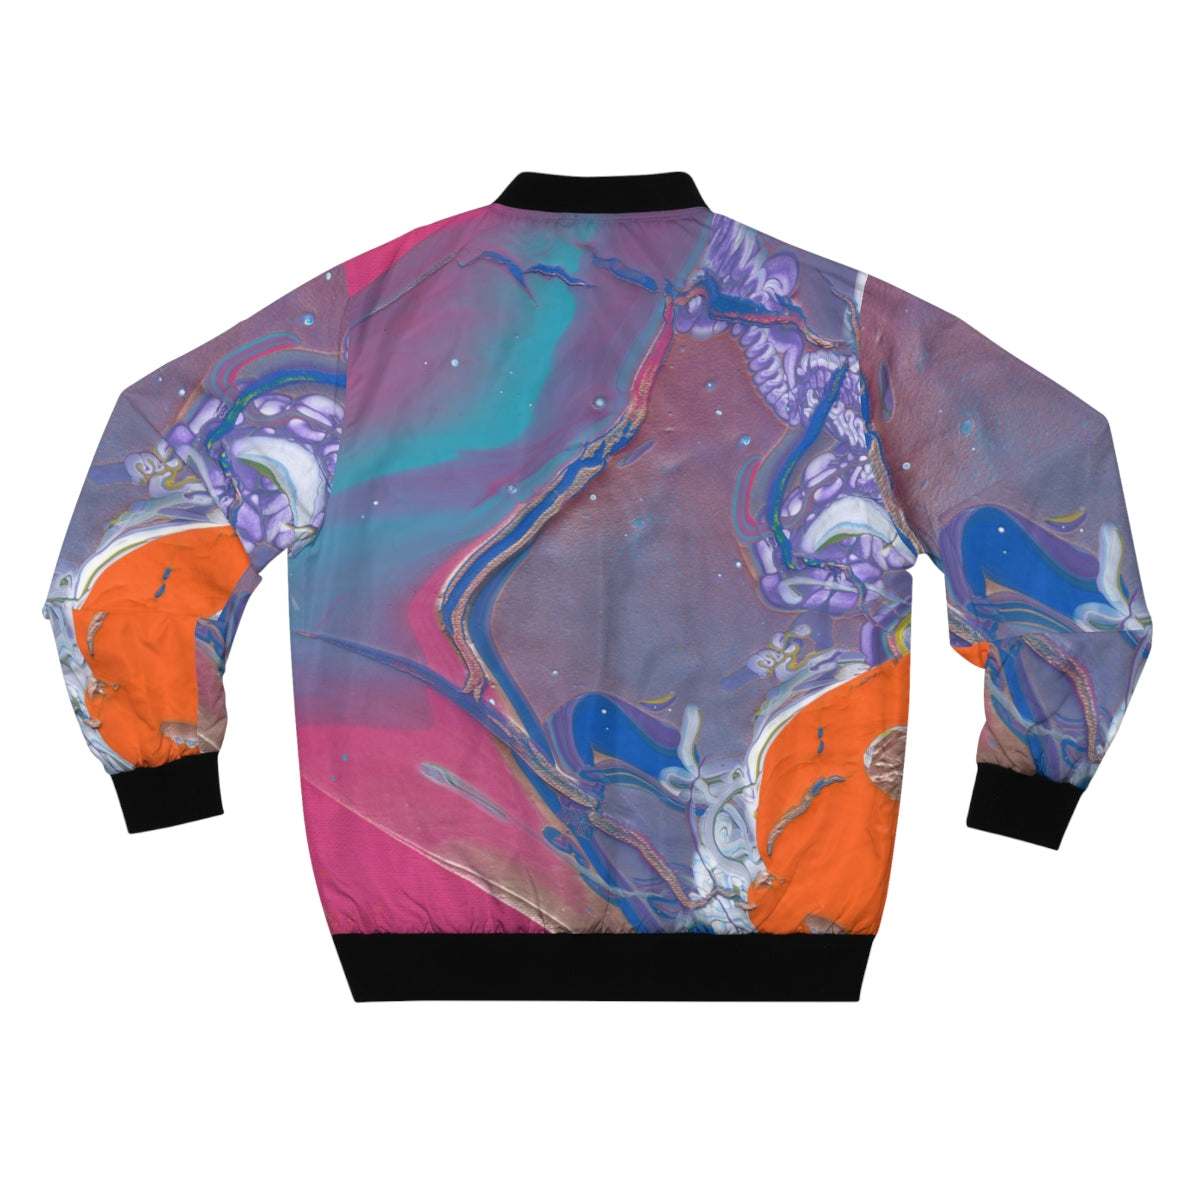 UNDER WATER LIFE  2  AOP Bomber Jacket  SIZES  XS - 3XL